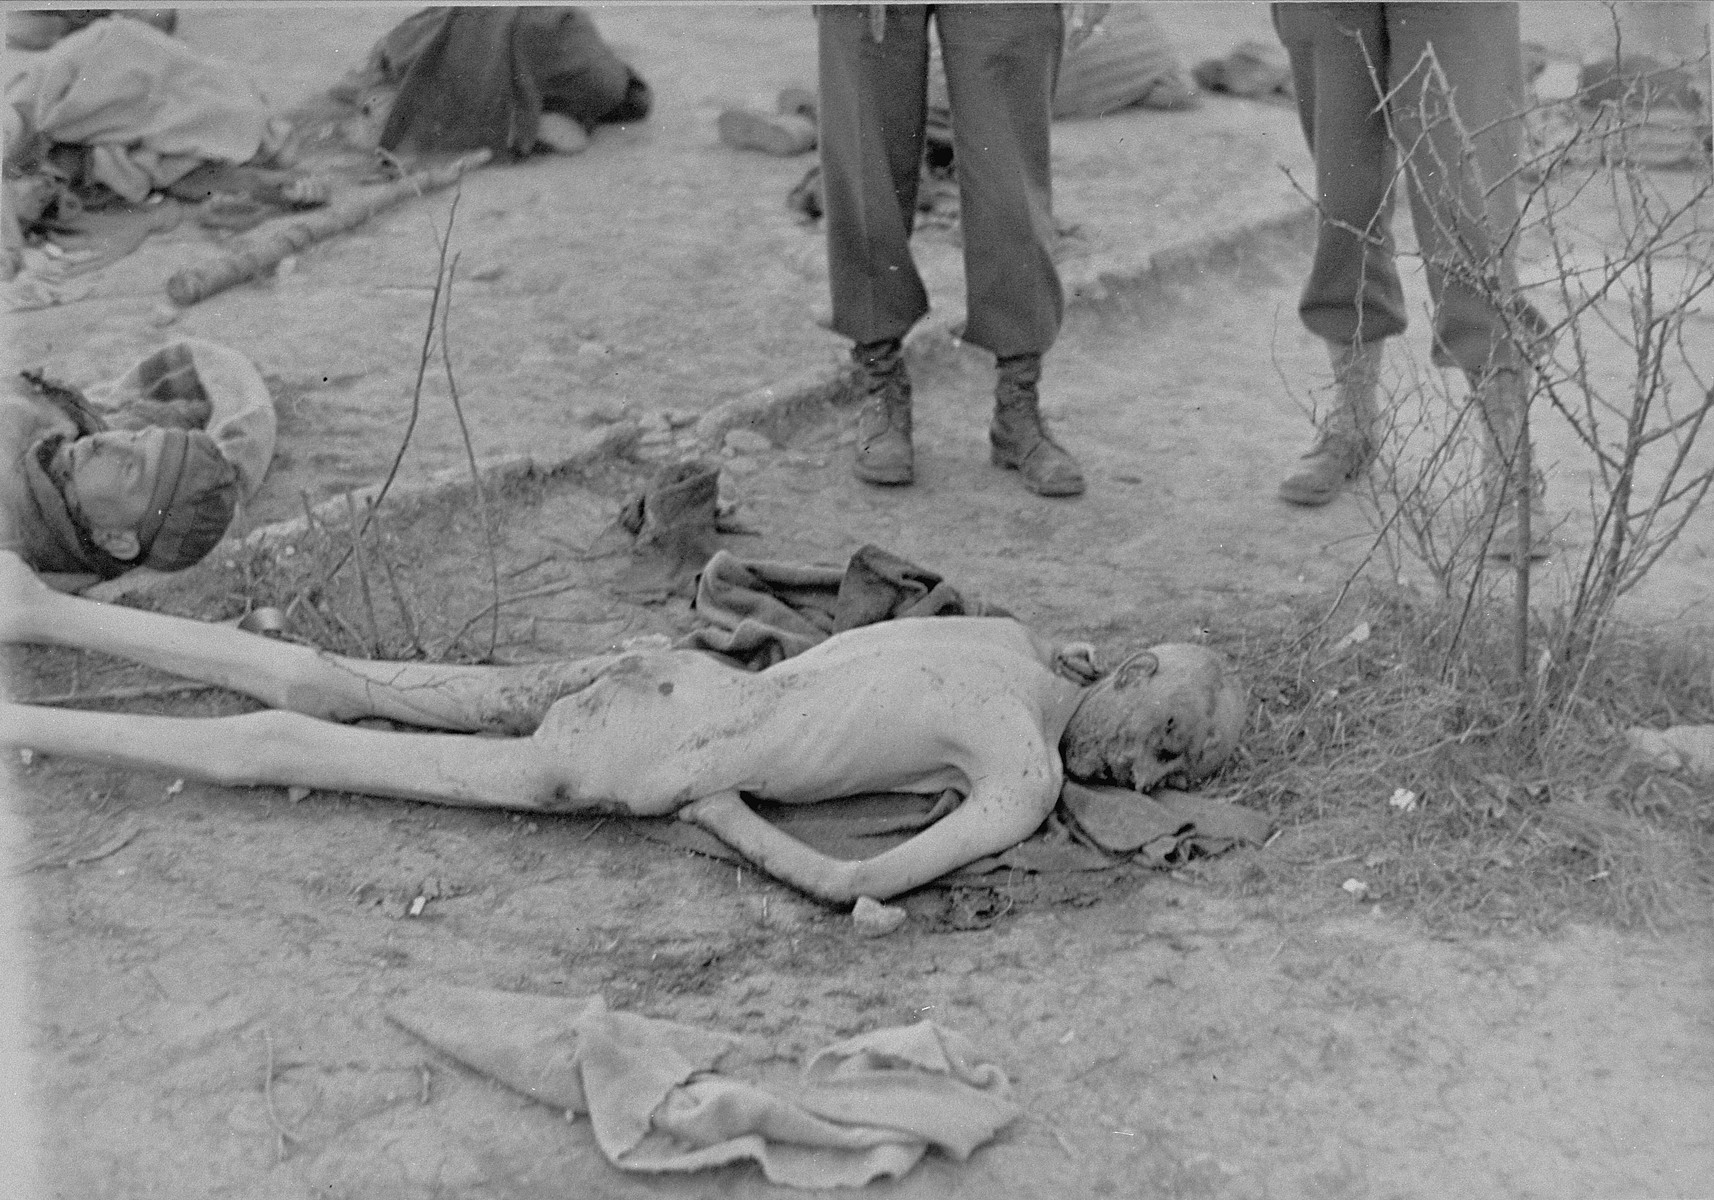 American soldiers view a naked, emaciated corpse in Ohrdruf.